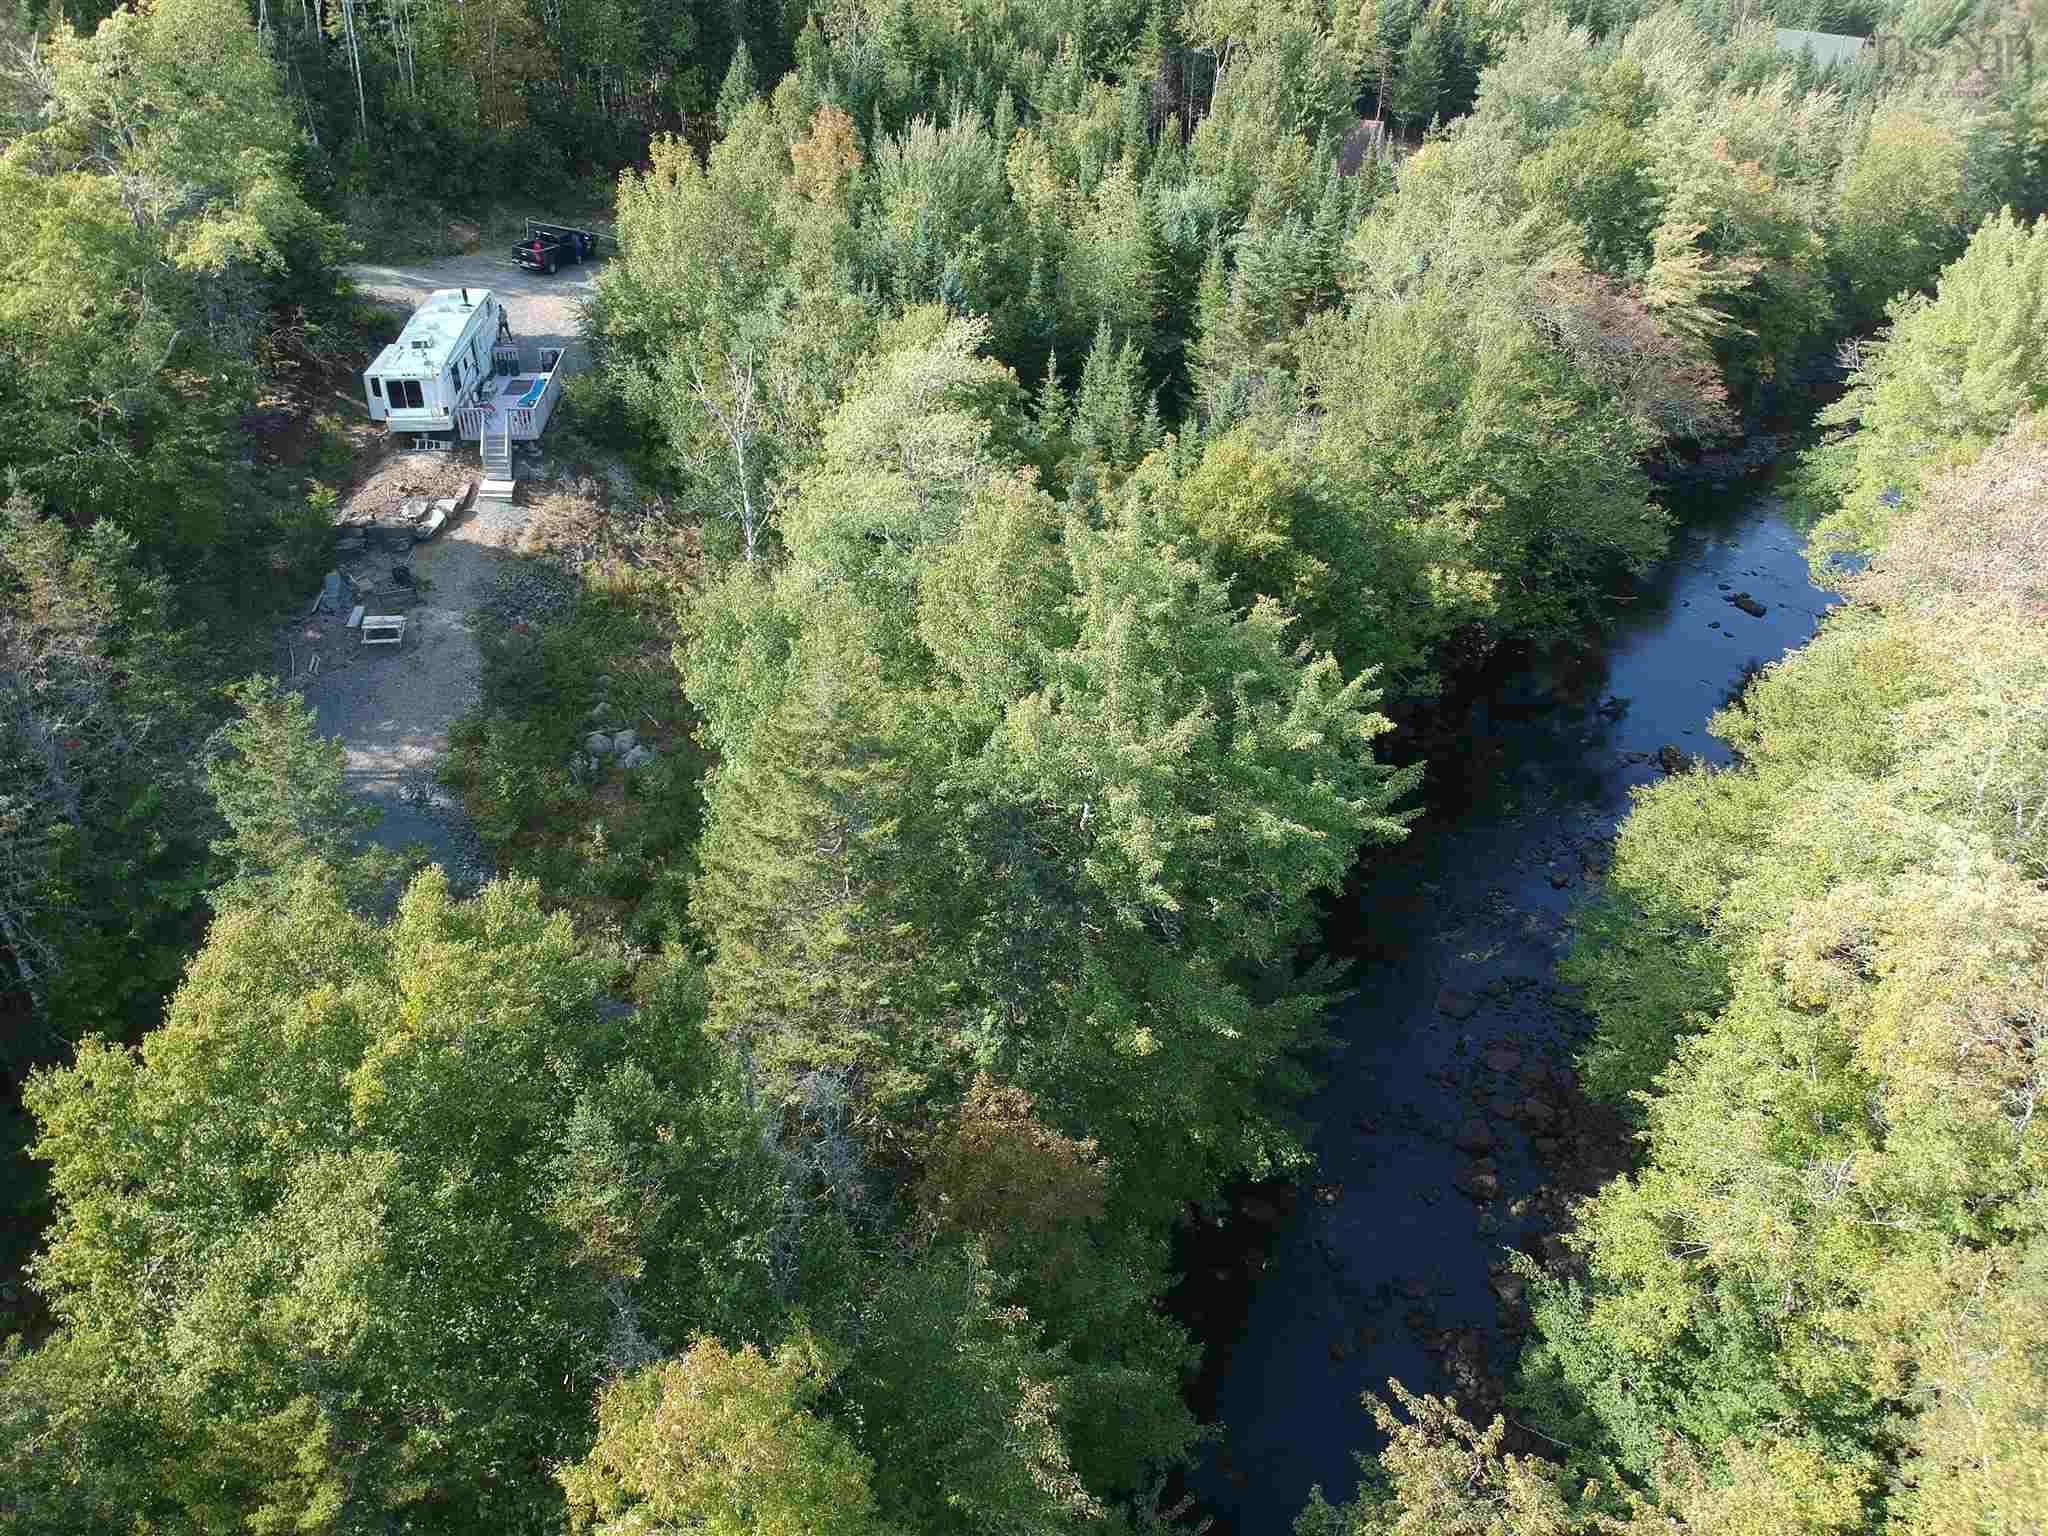 Main Photo: 159 Down River Lane in Maplewood: 405-Lunenburg County Residential for sale (South Shore)  : MLS®# 202125599